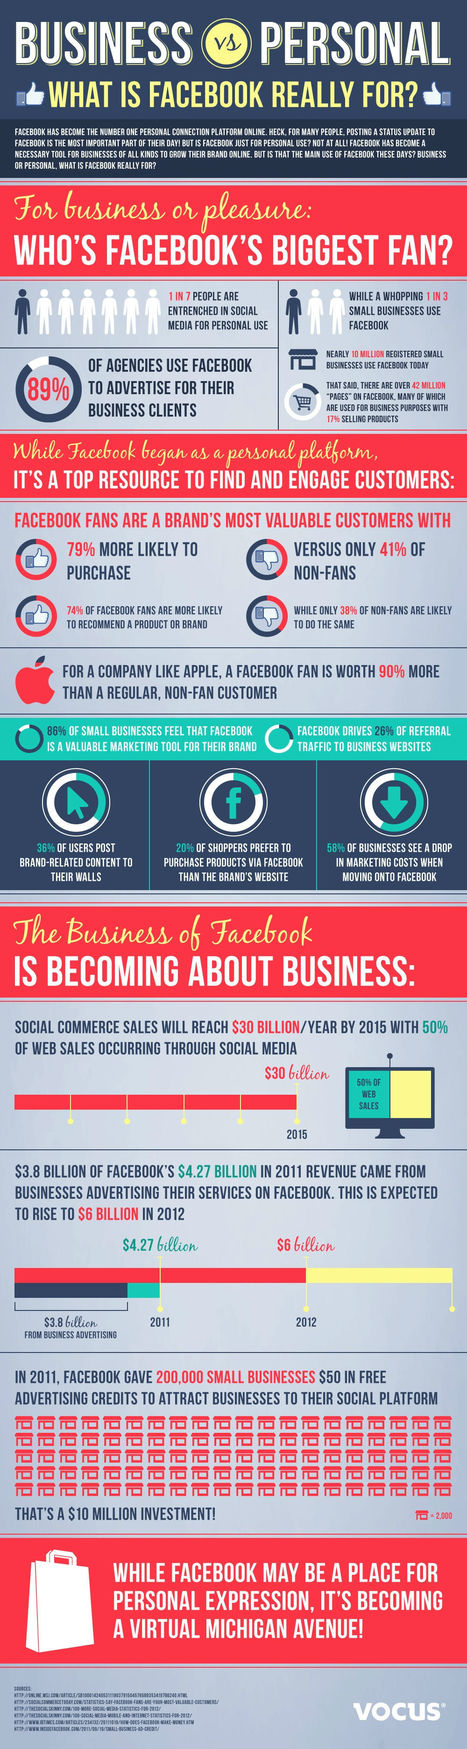 Why Sales on Social Media Will Be Huge By 2015 [INFOGRAPHIC] | Social media and education | Scoop.it